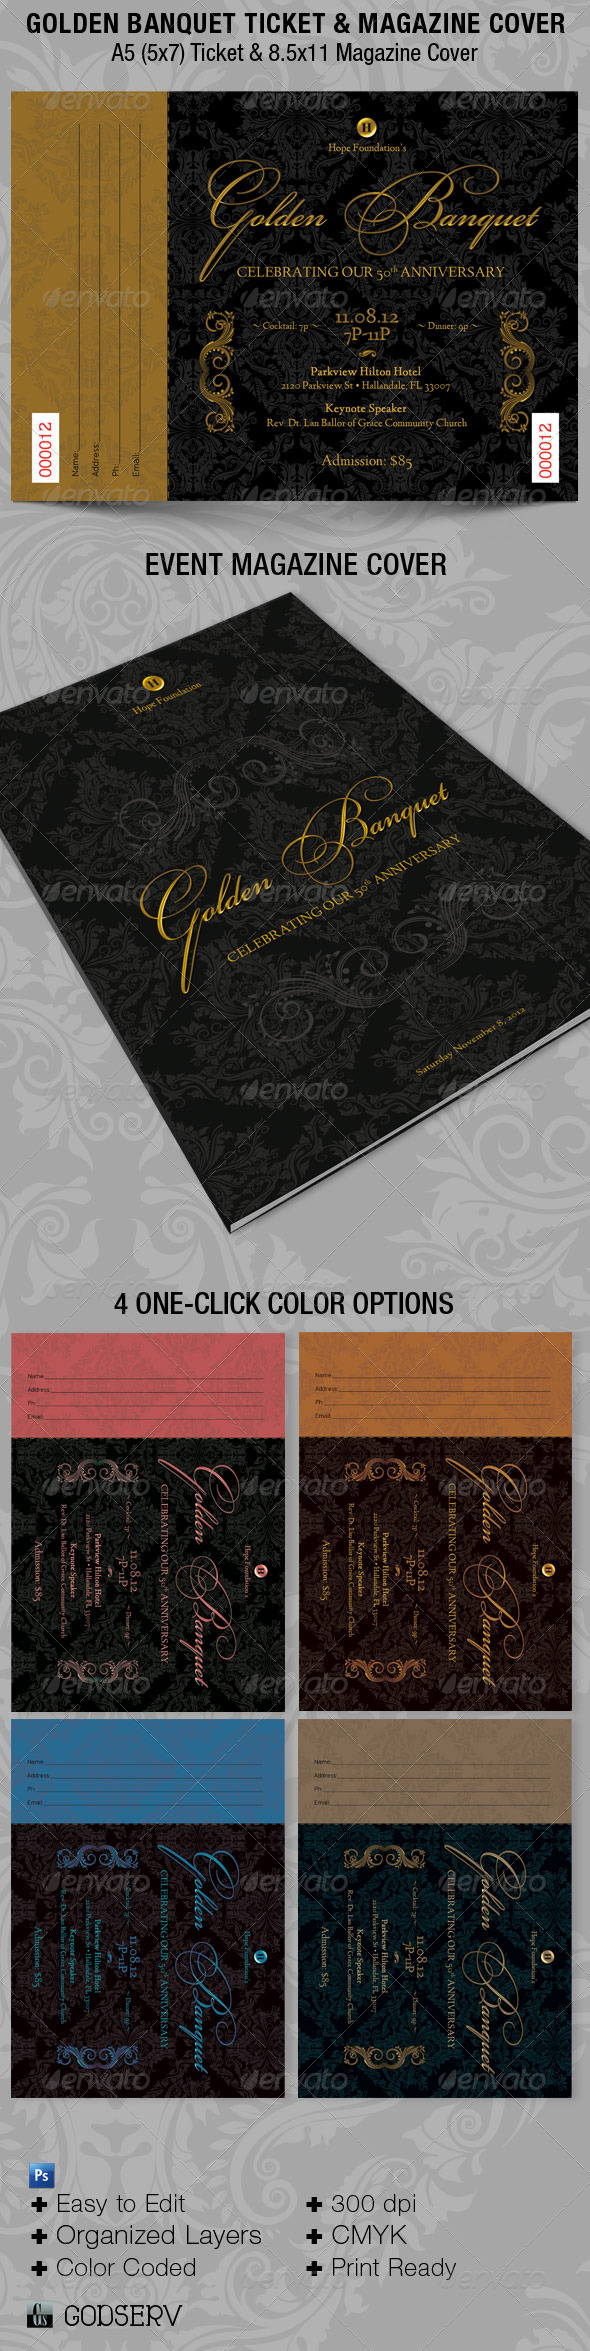 Golden Banquet Ticket and Magazine Cover Template - Miscellaneous Print Templates